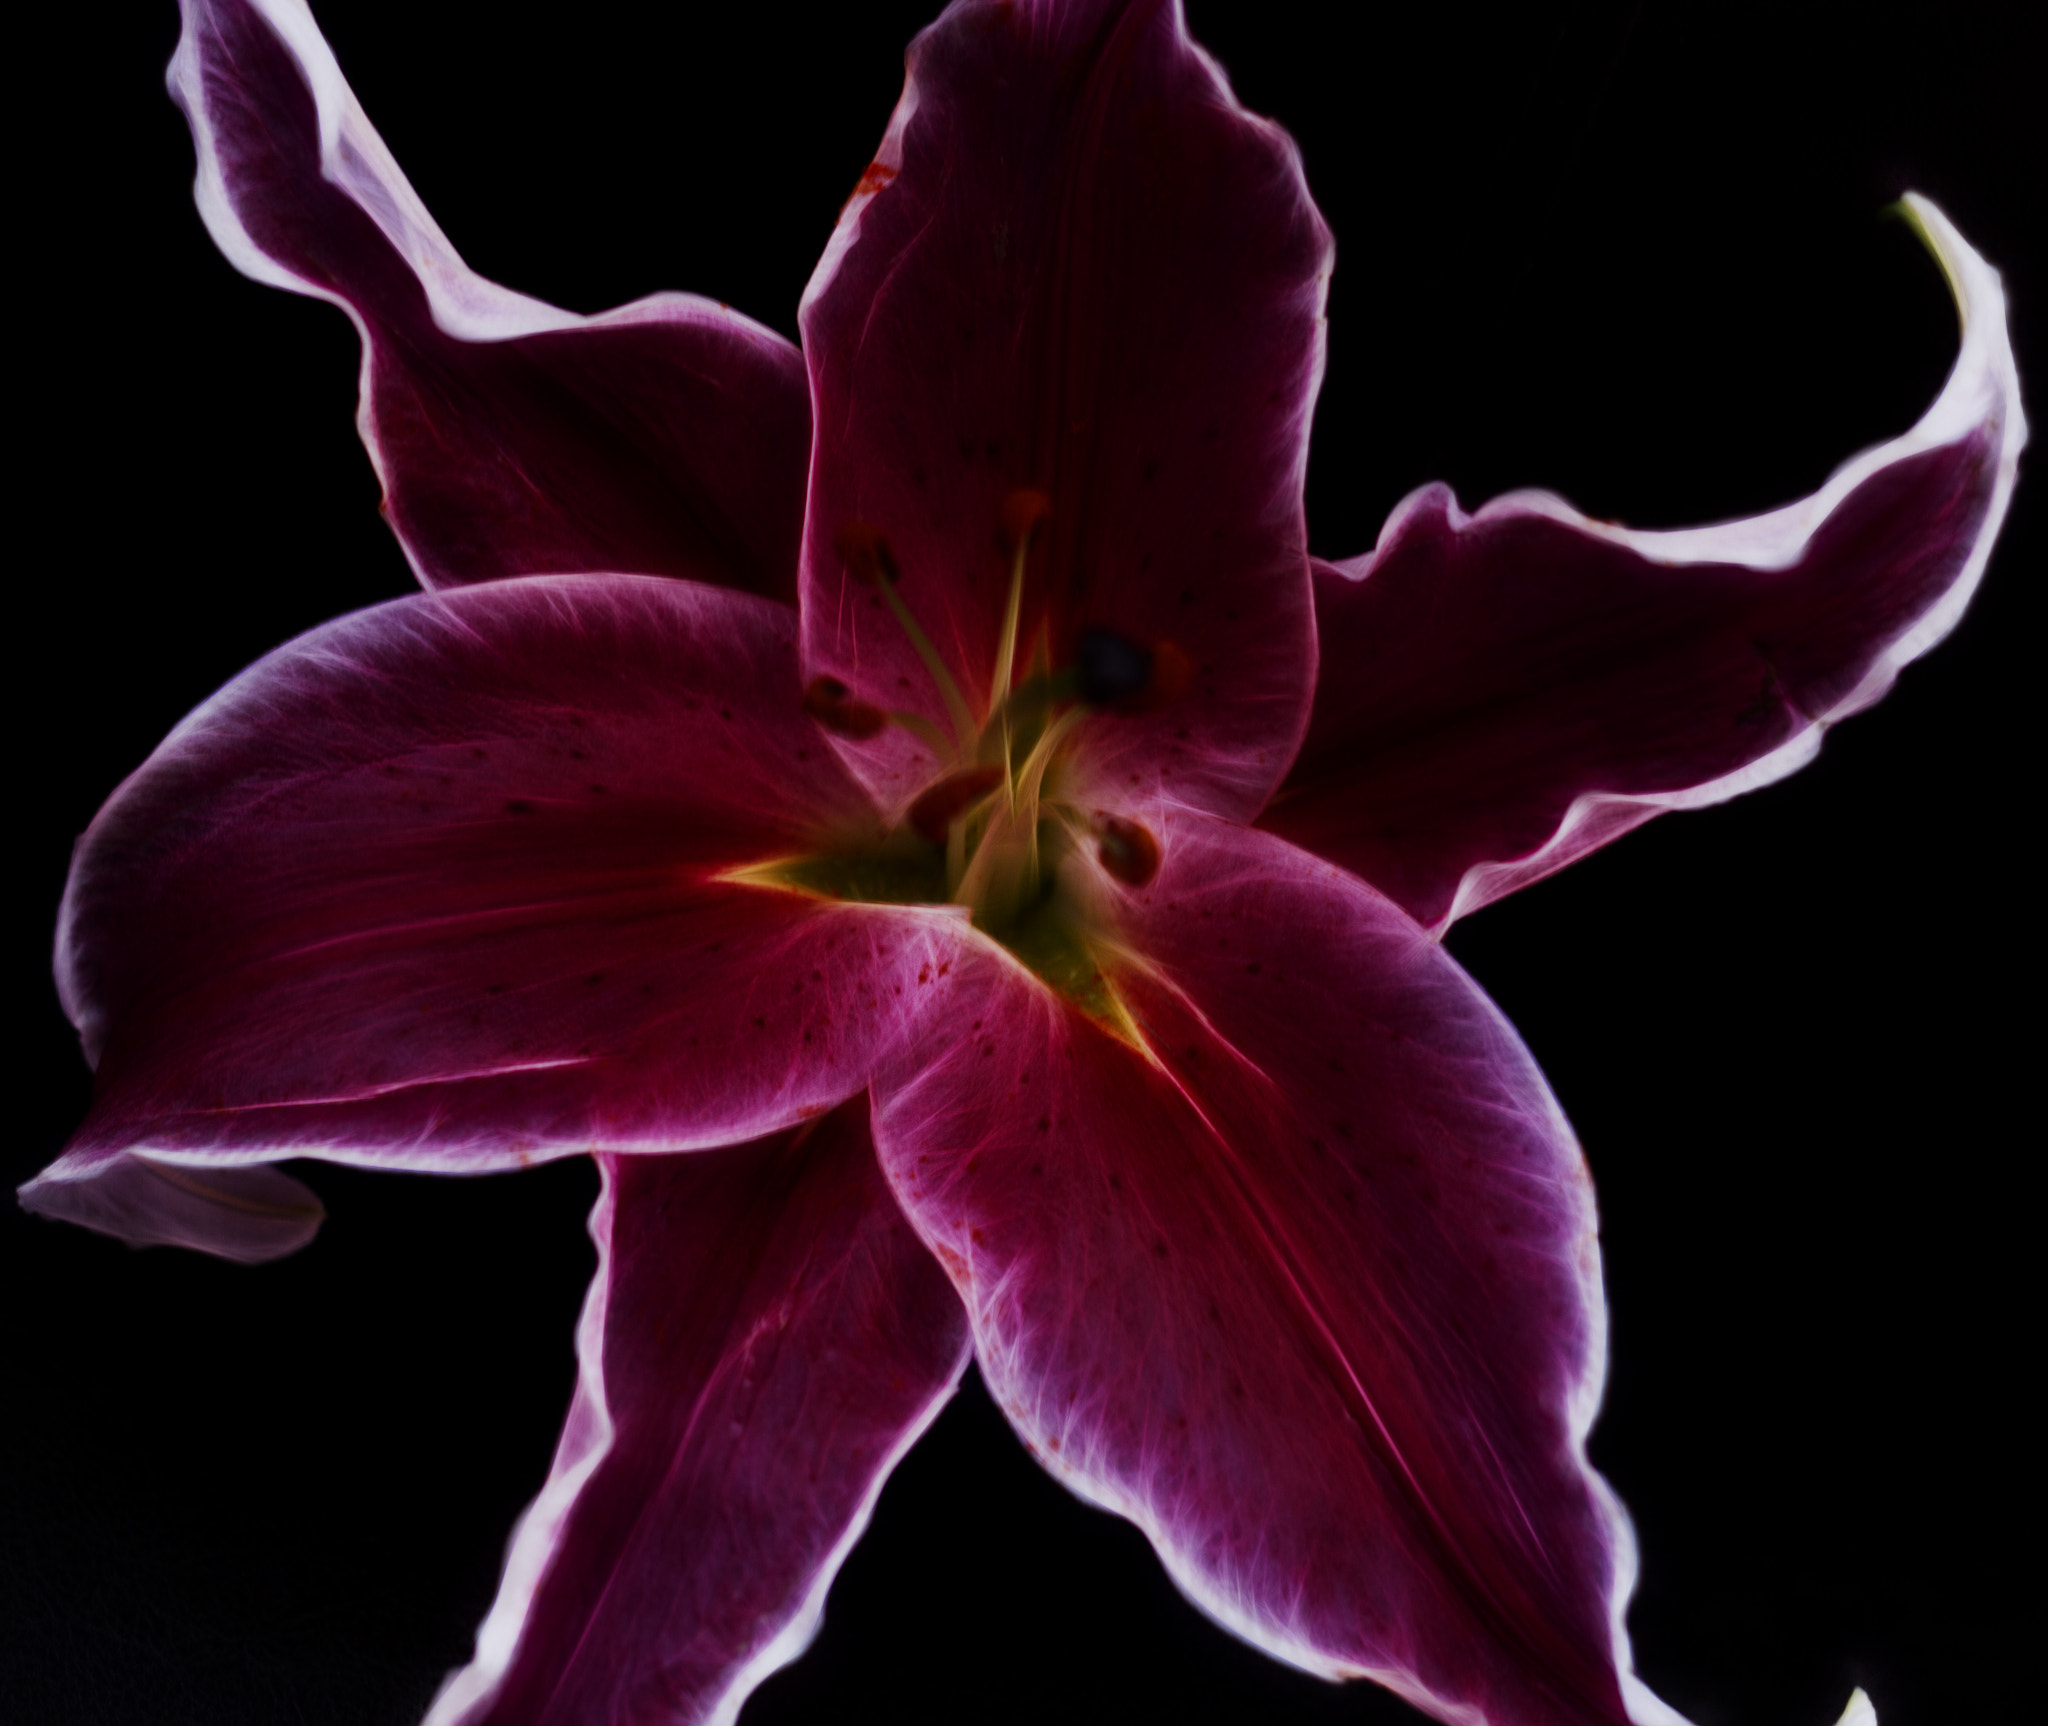 Photograph Lilium Stargazer by Linda Tiepelman on 500px